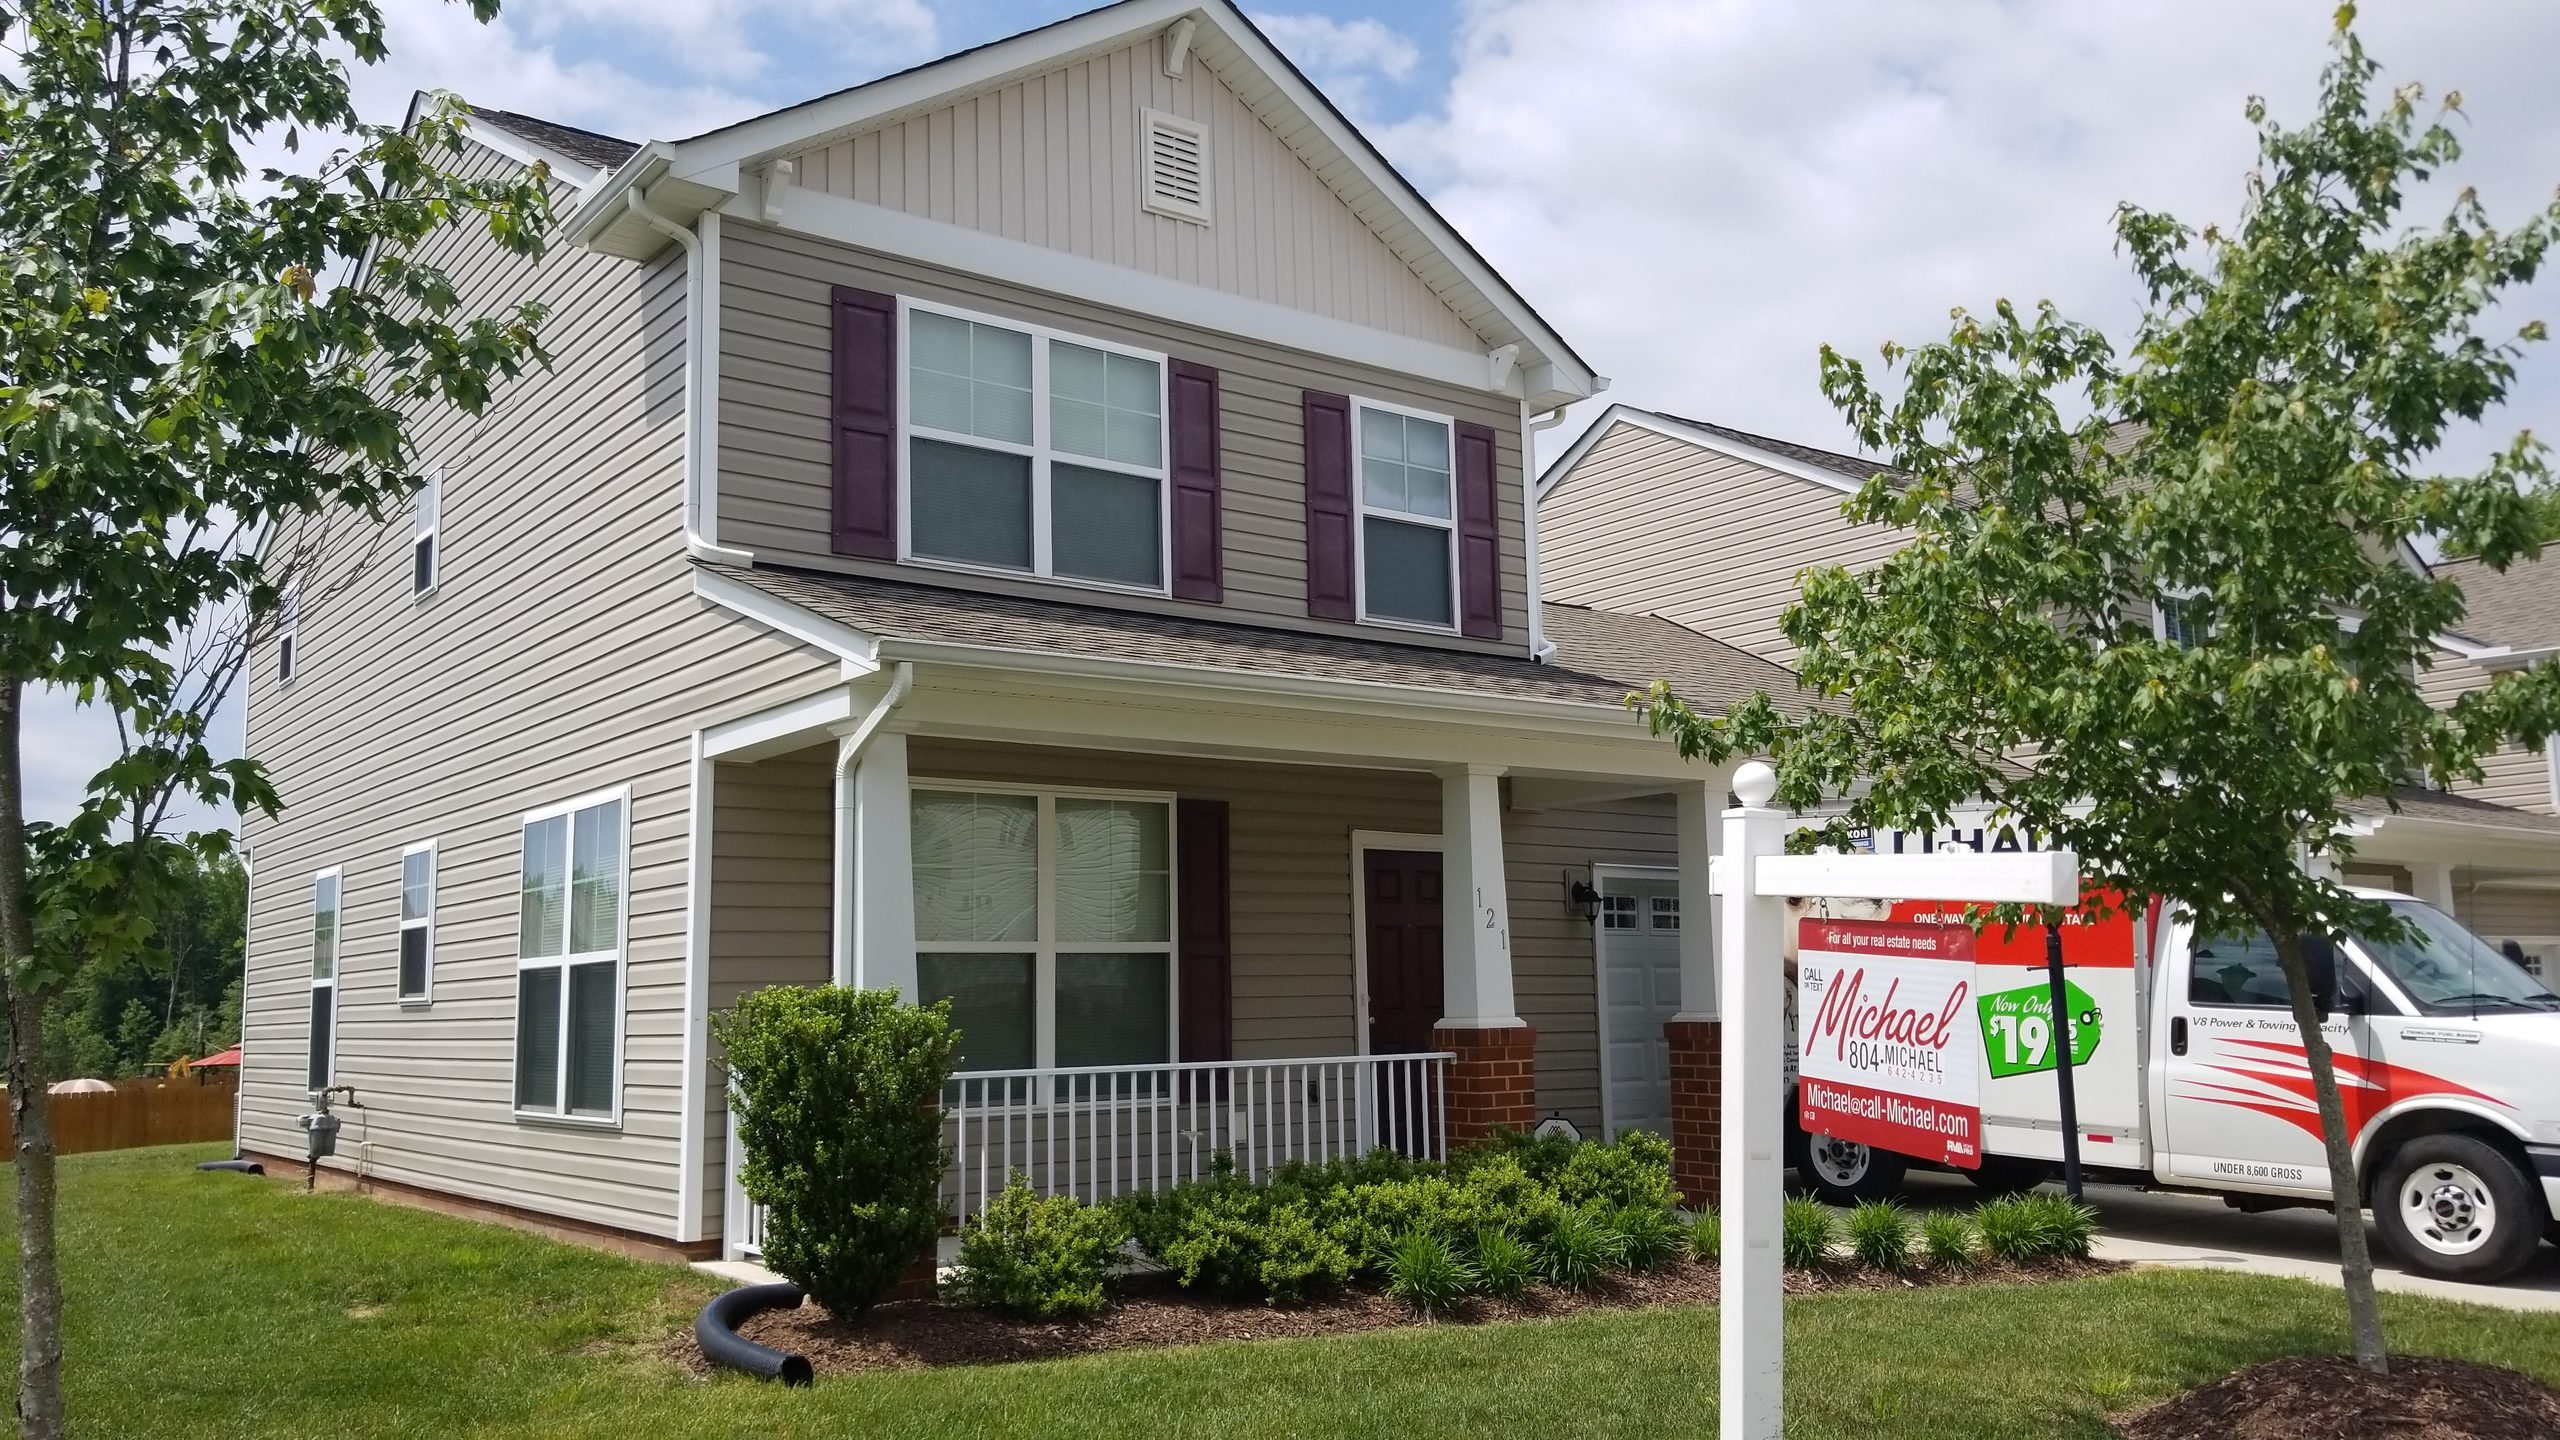 Townhouse near Airport at 121 New Market Village Pkwy, Henrico, VA 23231 For Sale